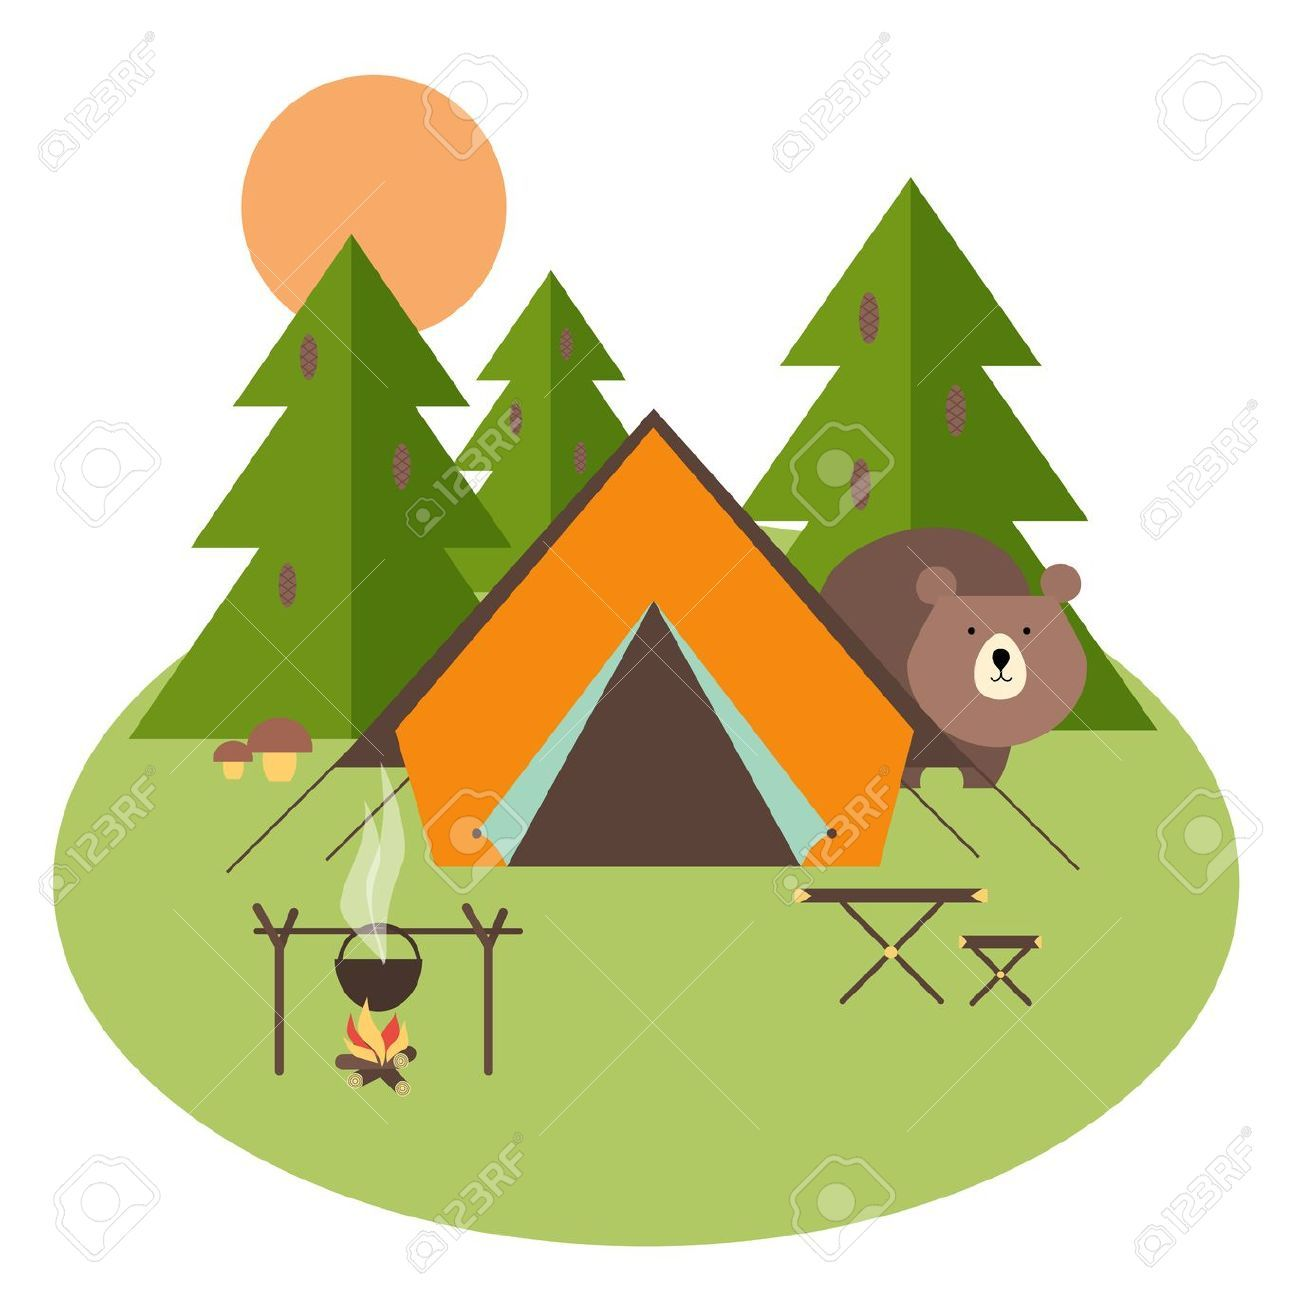 Camping Tent Stock Vector Illustration And Royalty Free Clipart